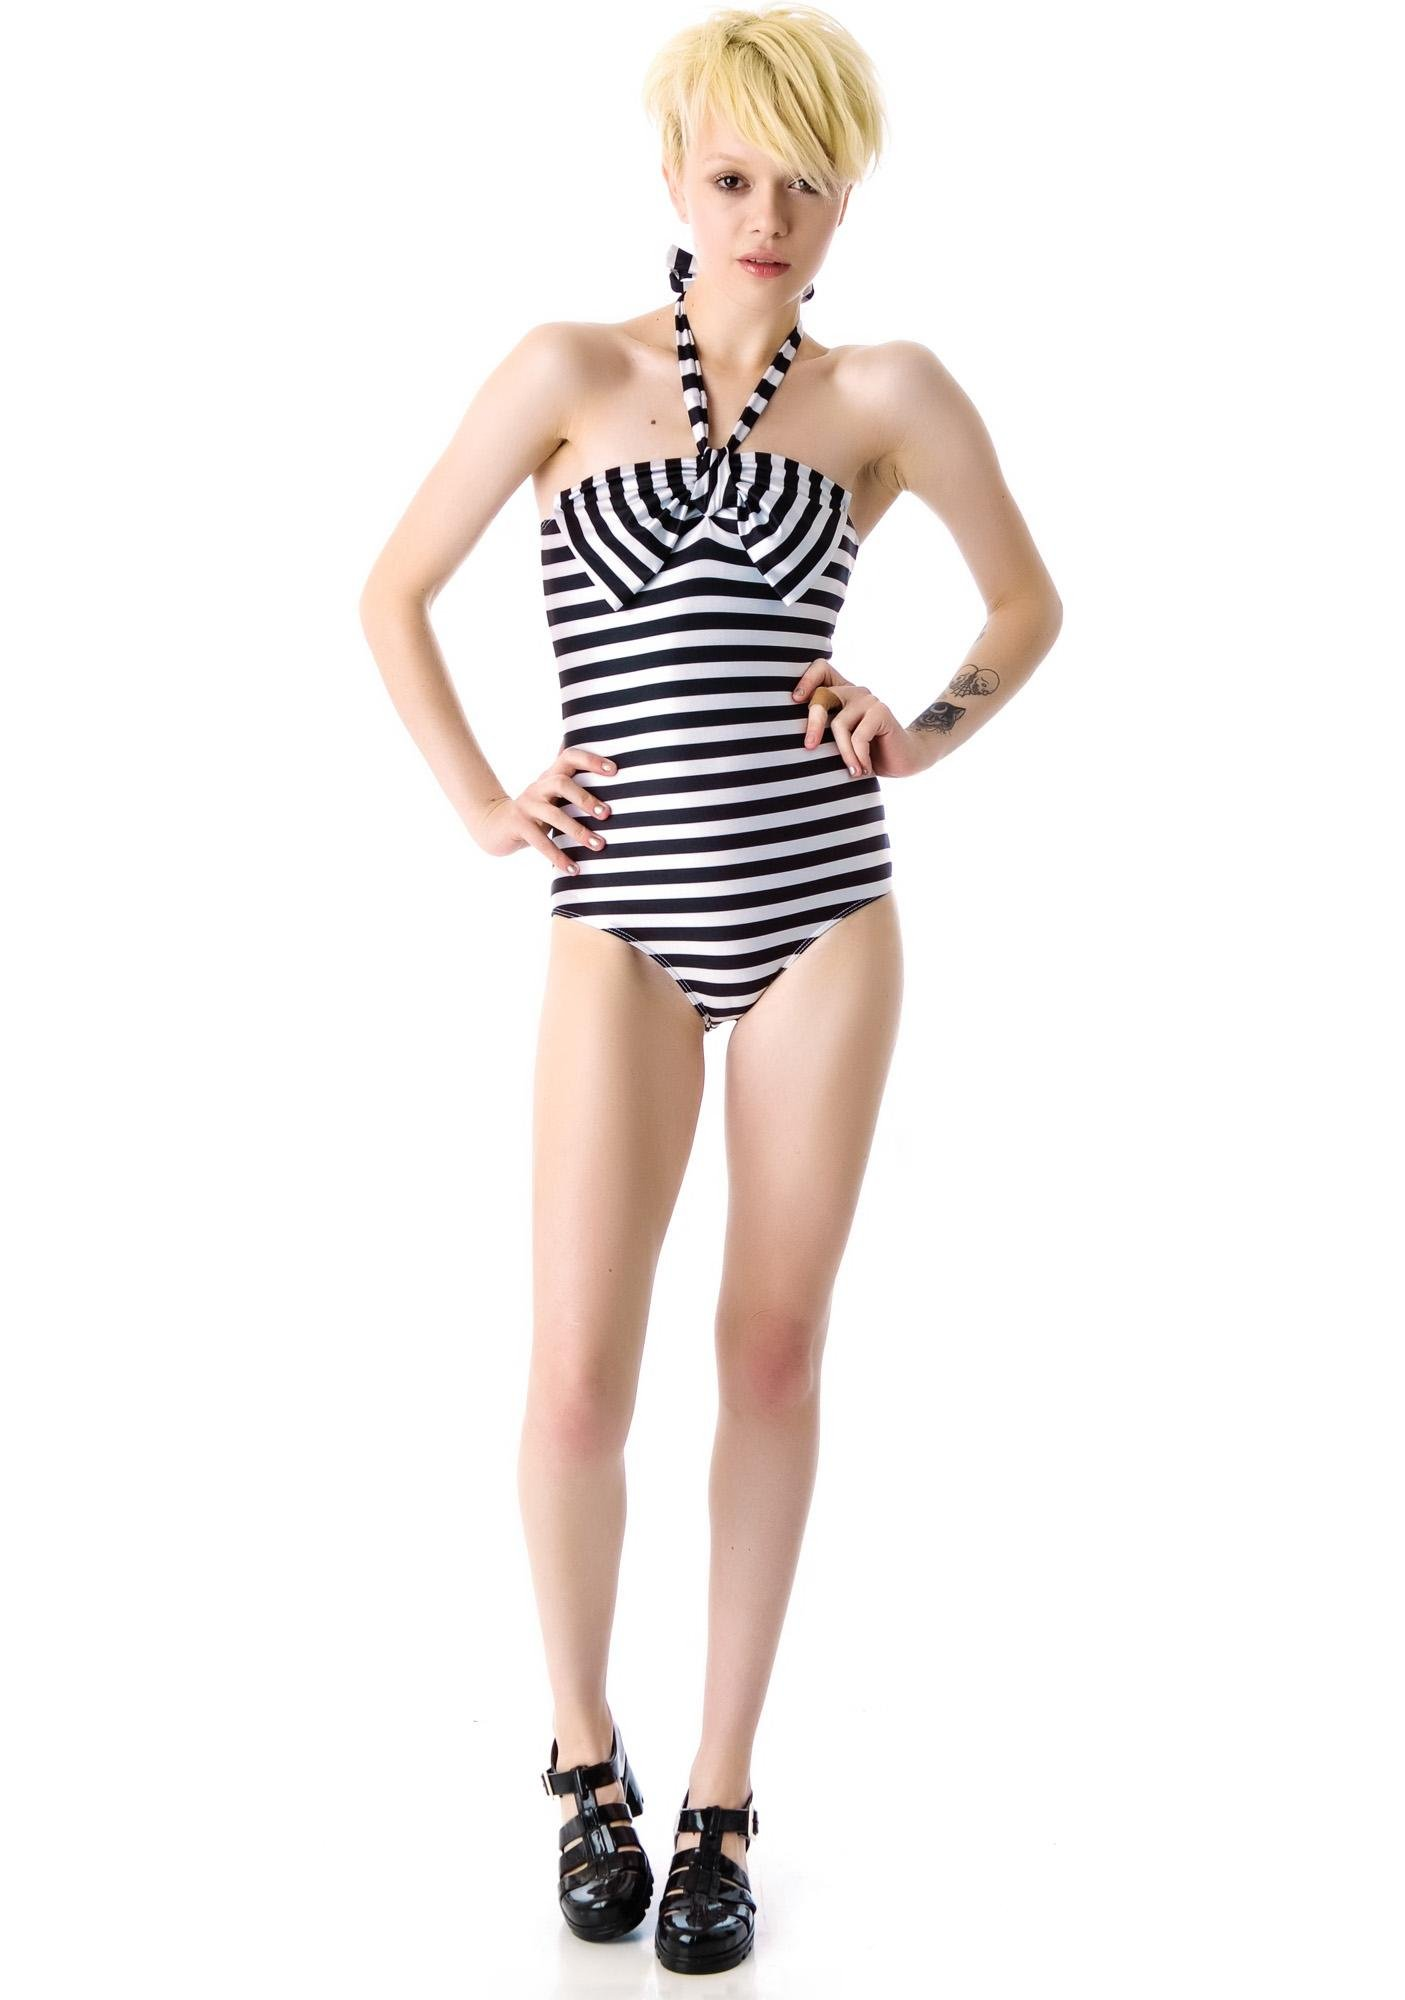 Lolli Swim All Apologies Bow One Piece